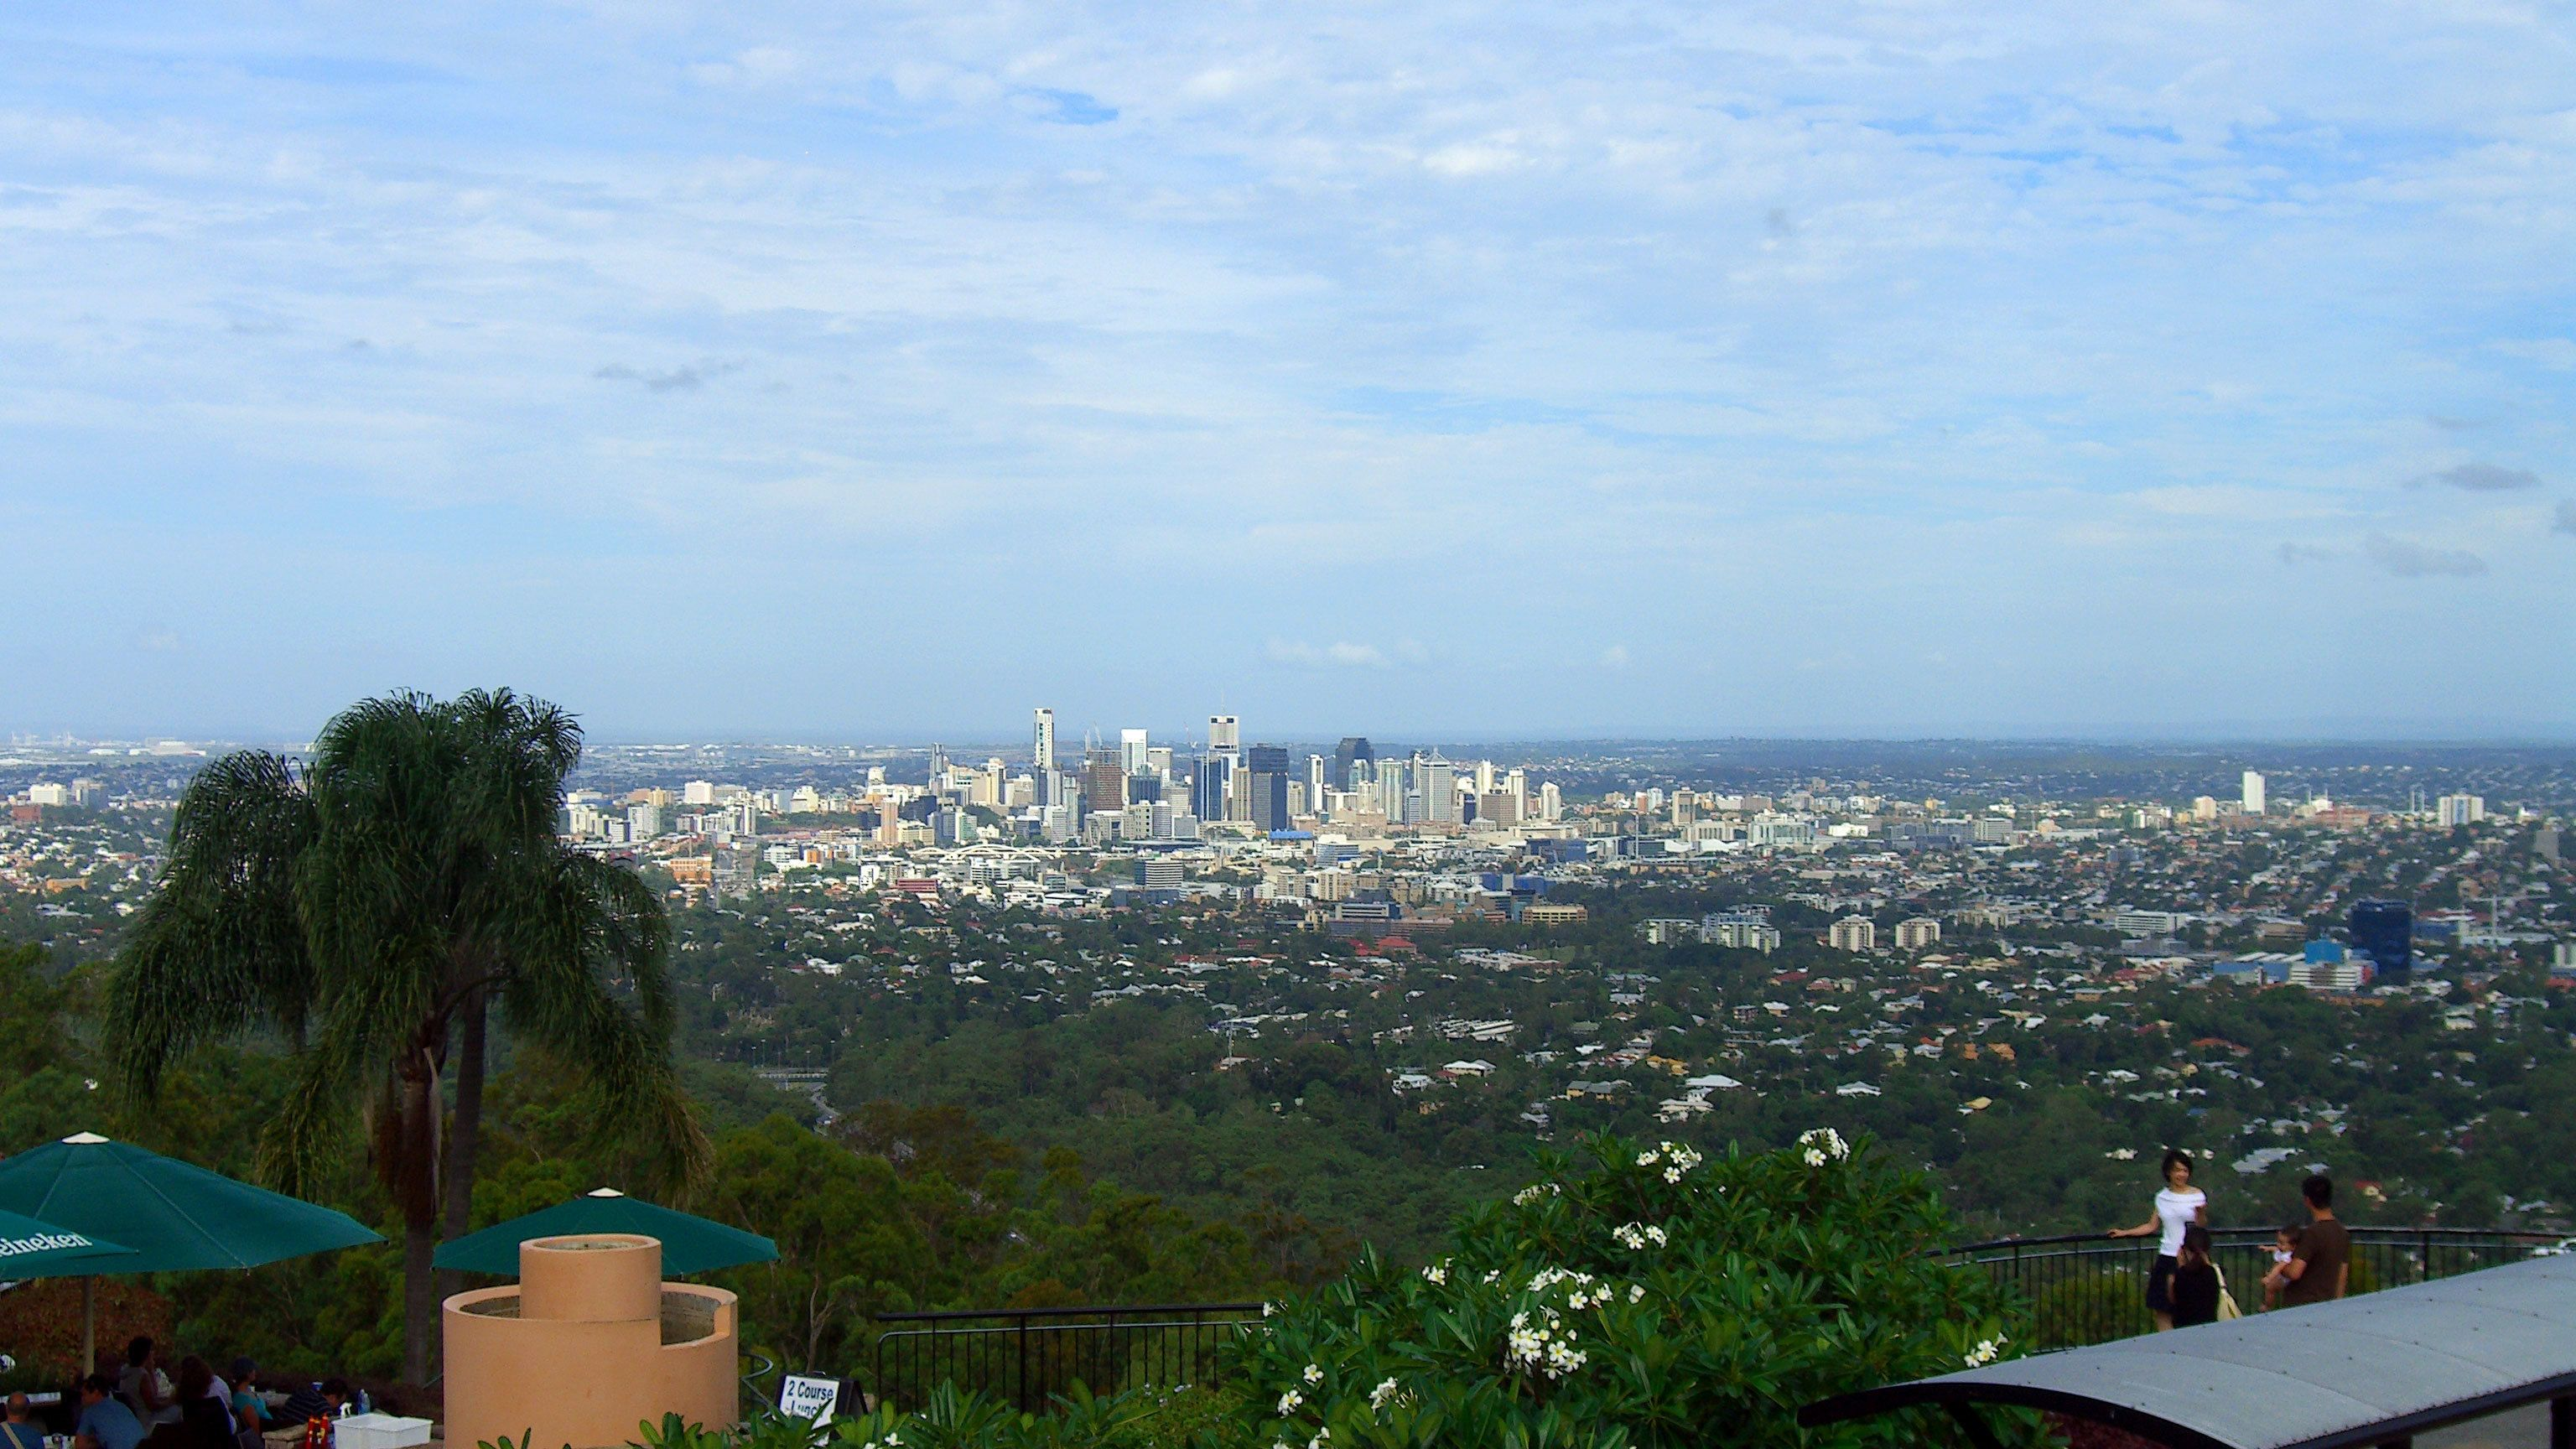 Gorgeous view of the city of Brisbane